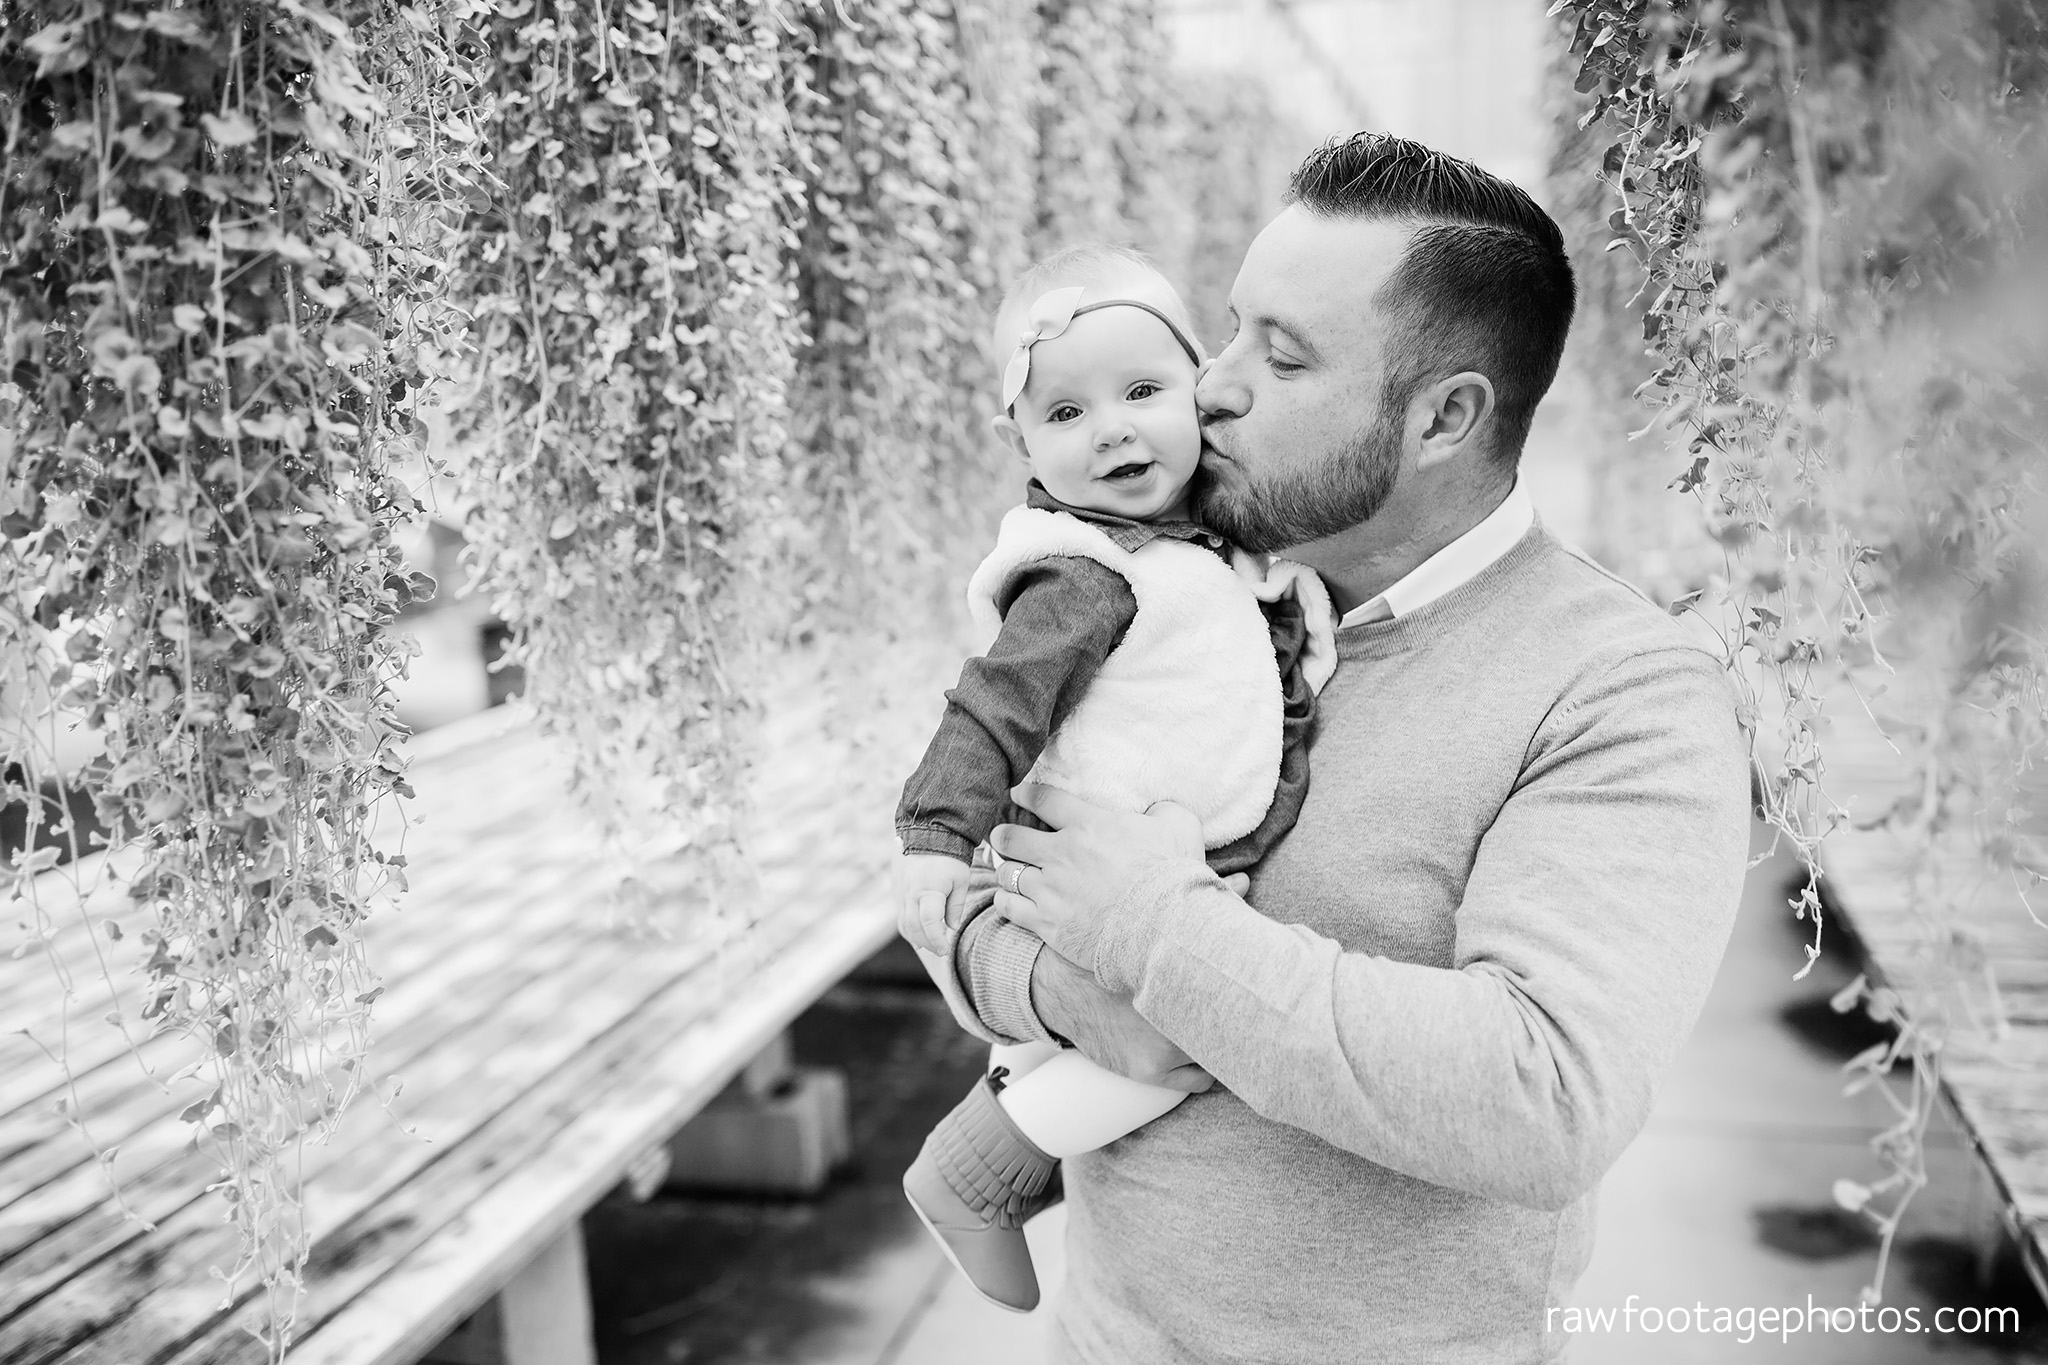 london_ontario_family_photographer-greenhouse_photos-winter_field_photos-raw_footage_photography014.jpg